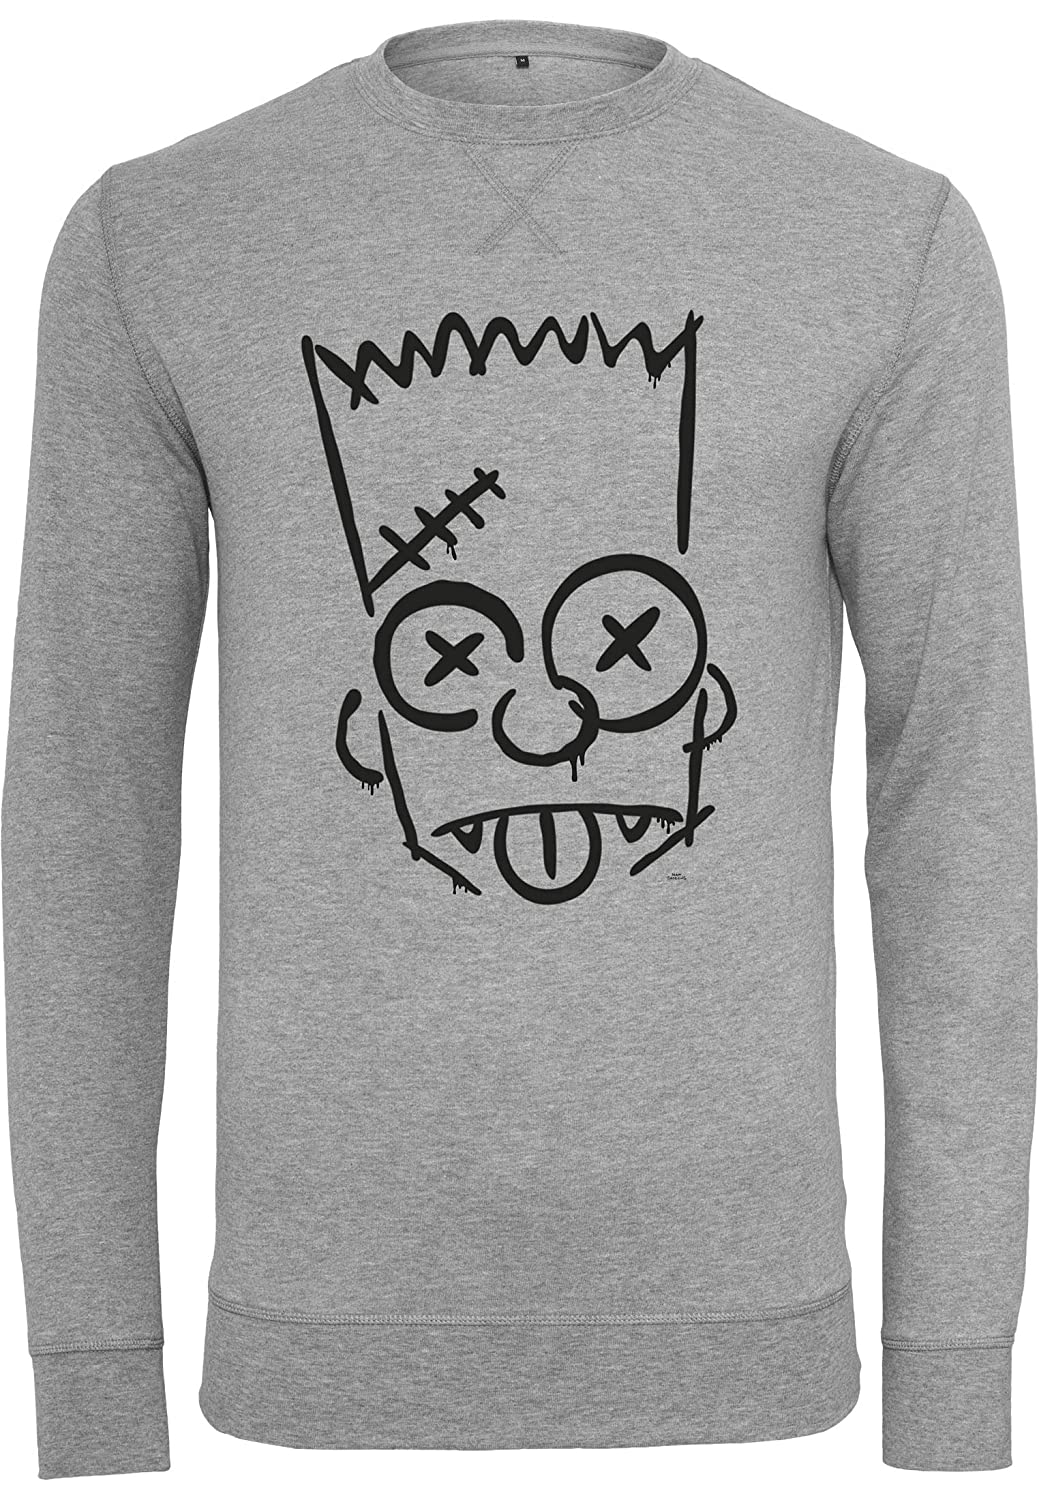 MERCHCODE Merch Código Hombre Simpsons graphity – Tabla Crew – Sudadera, Hombre, MC275, H.Grey, Largehttps://amzn.to/2E1oogd